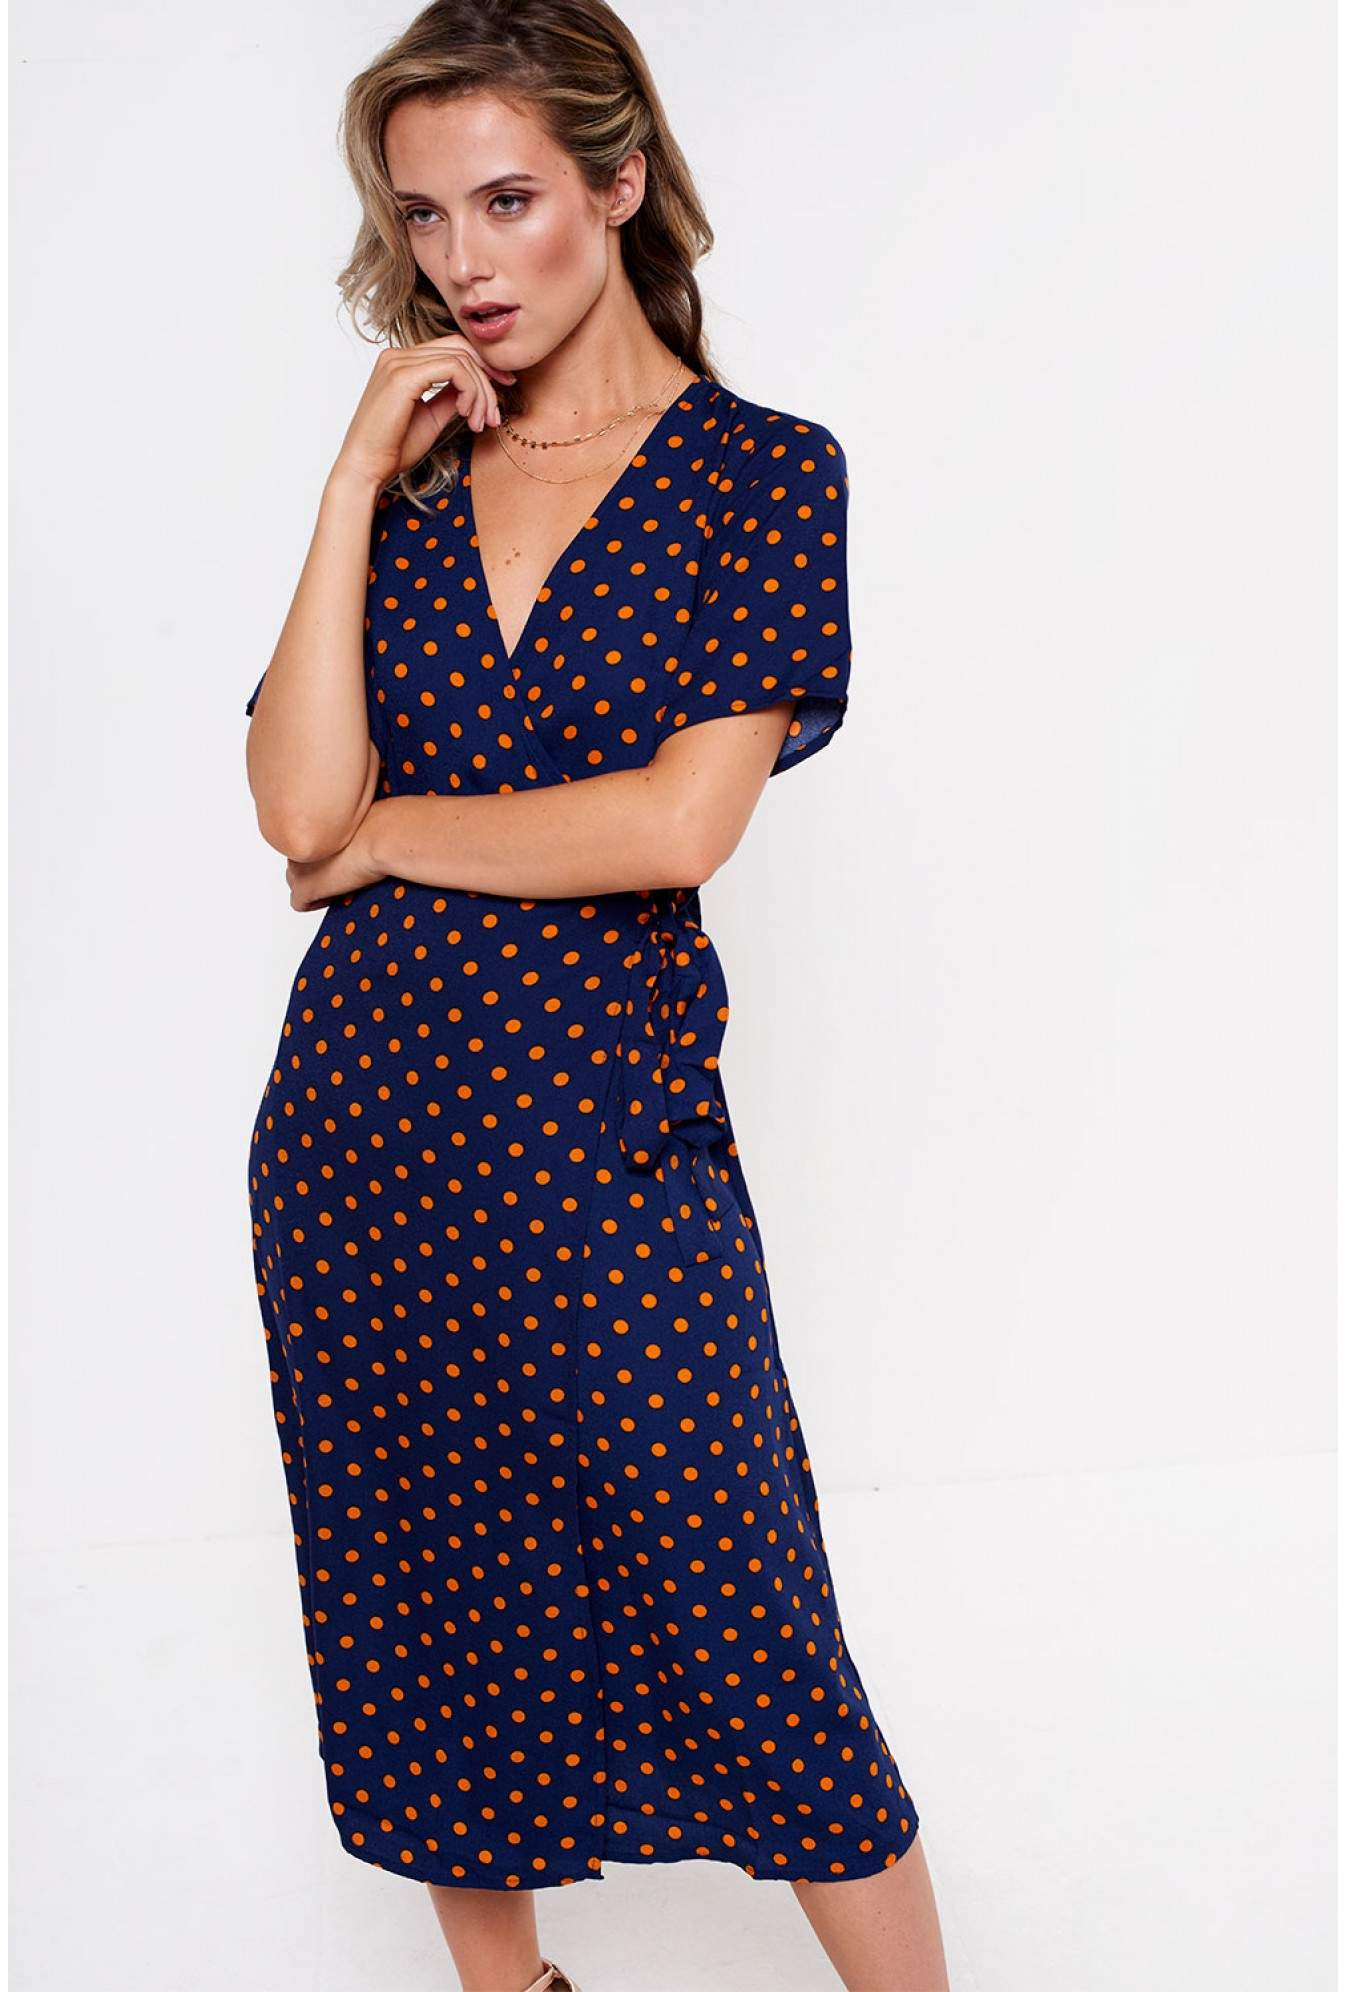 617b6bf1e92d25 Vila Doyle Wrap Midi Dress in Navy Polka Dot | iCLOTHING